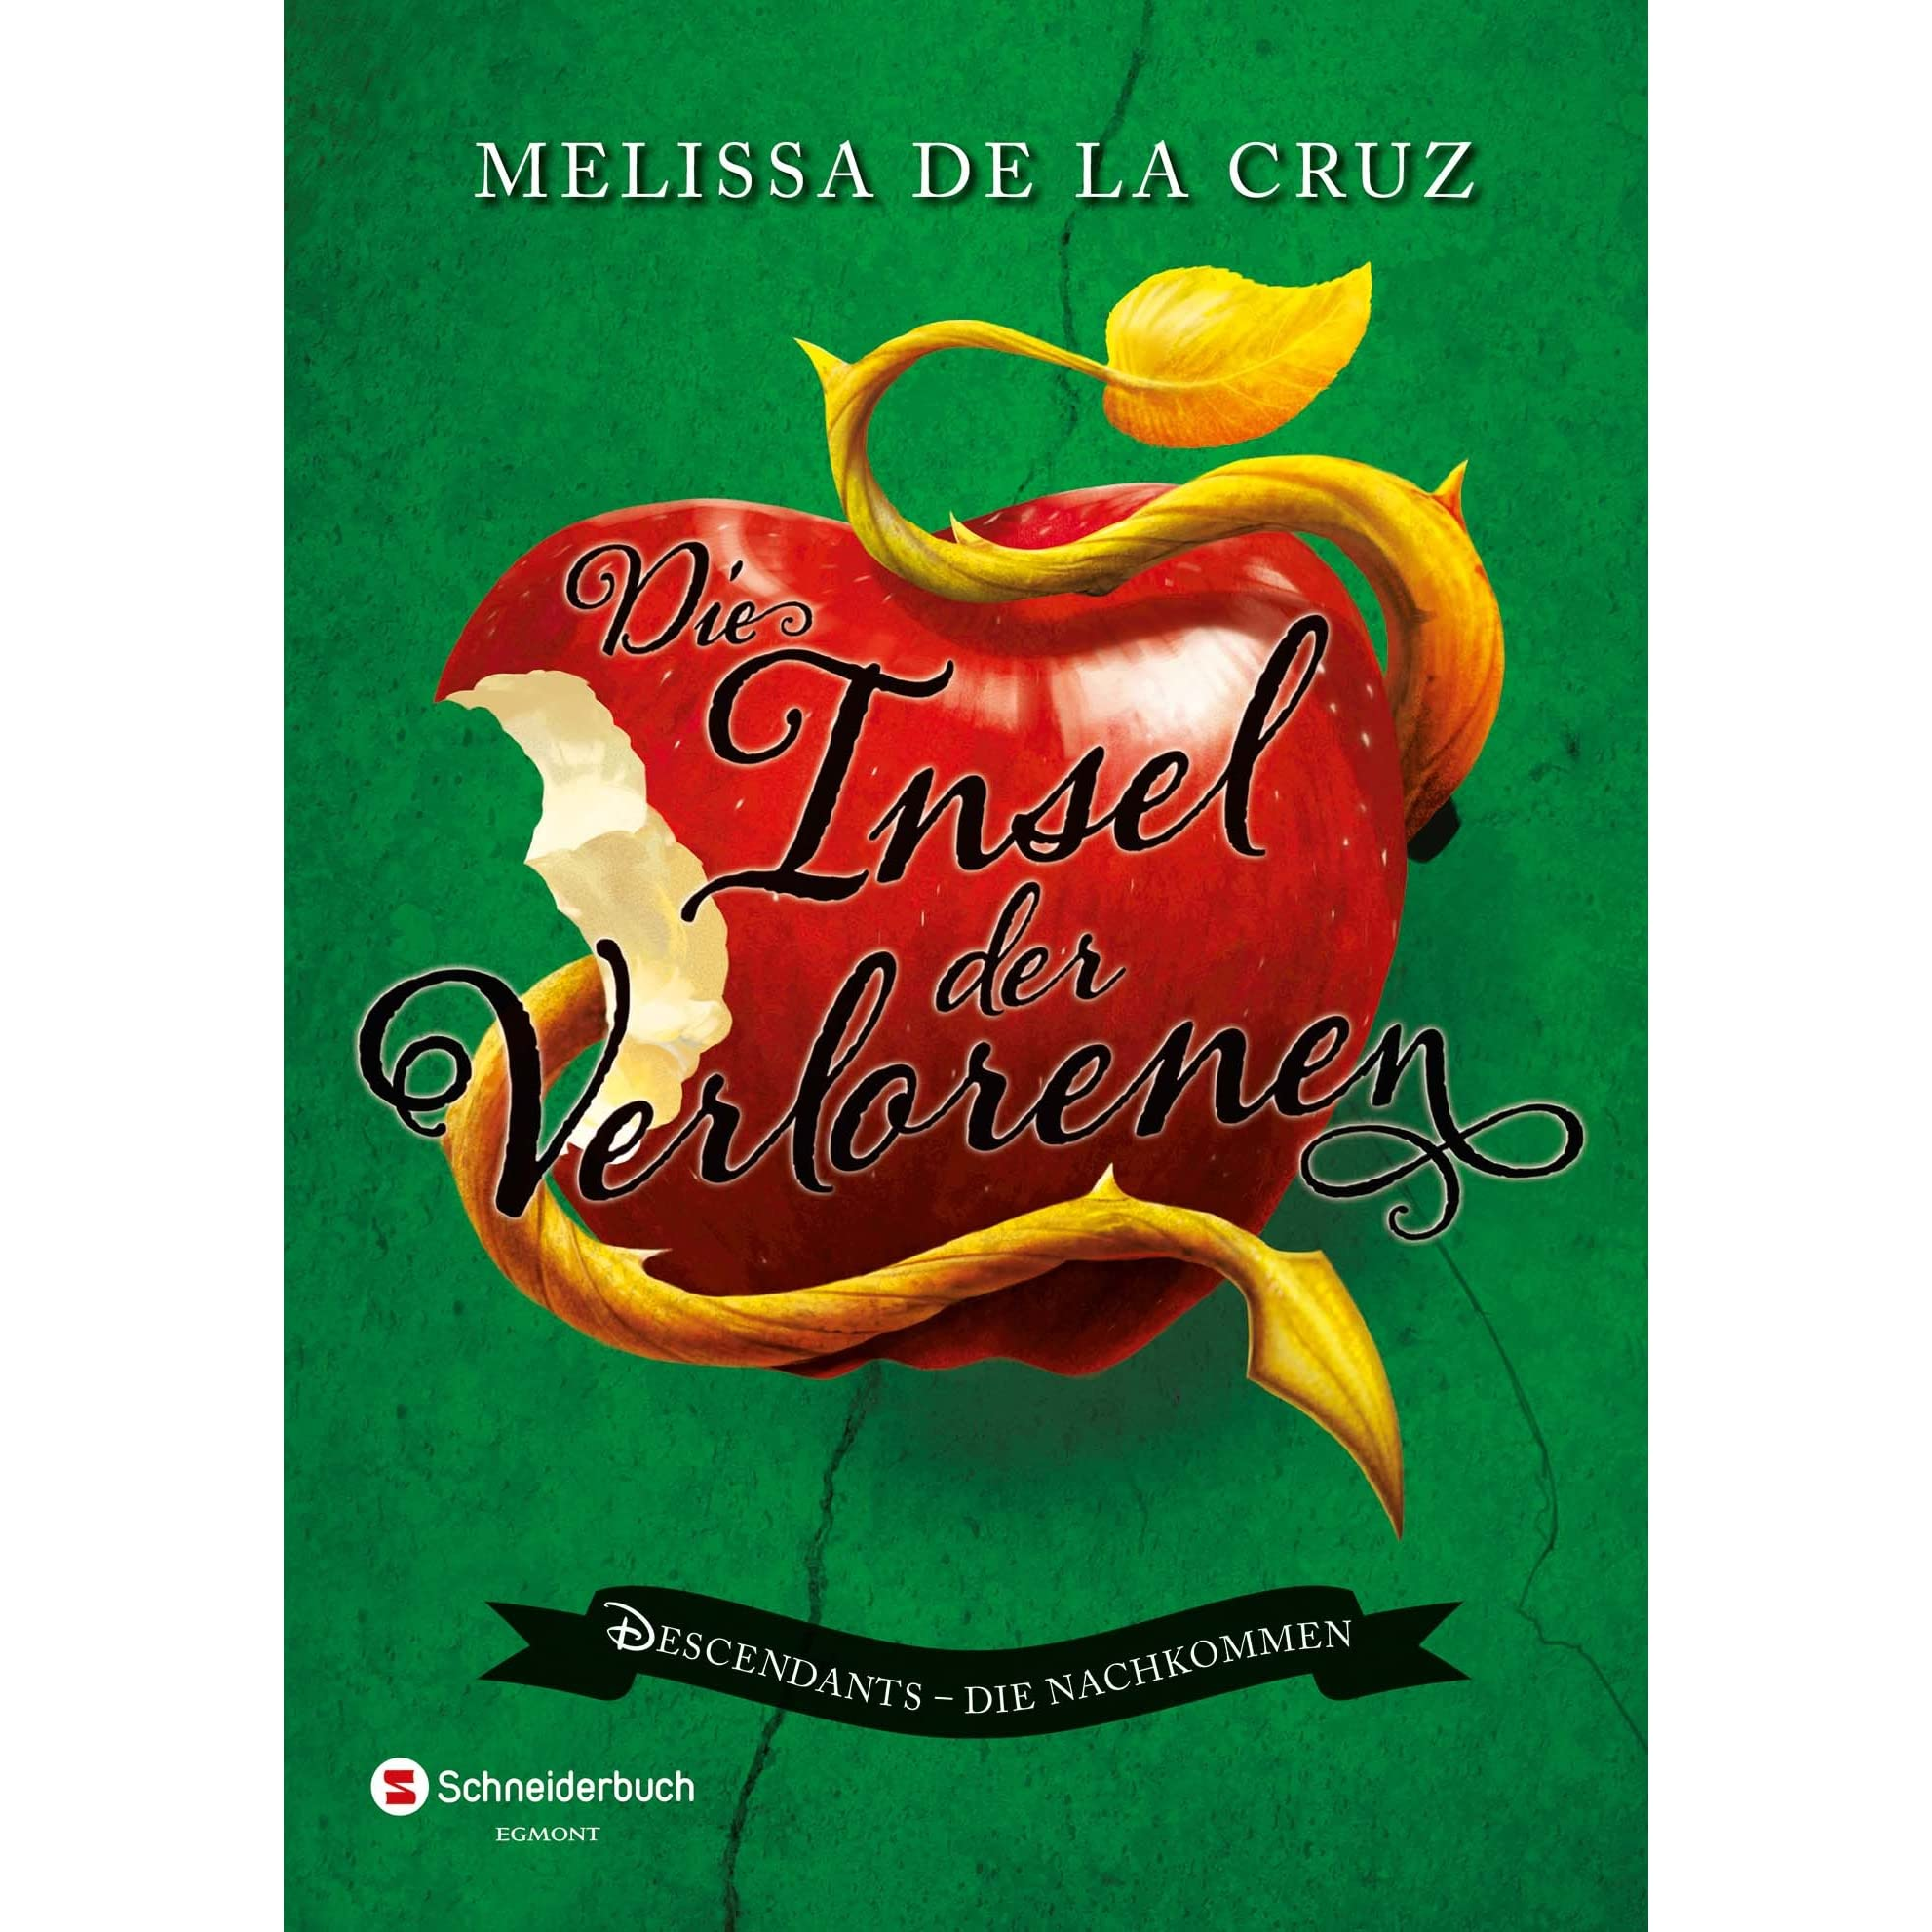 melissa de la cruz remembered essay Masquerade is the second installment in de la cruz's blue bloods series   thoughts had: i remember nothing holy shit wth just happened  them  from partying in this second installment of melissa de la cruz's fantasy/horror  series.